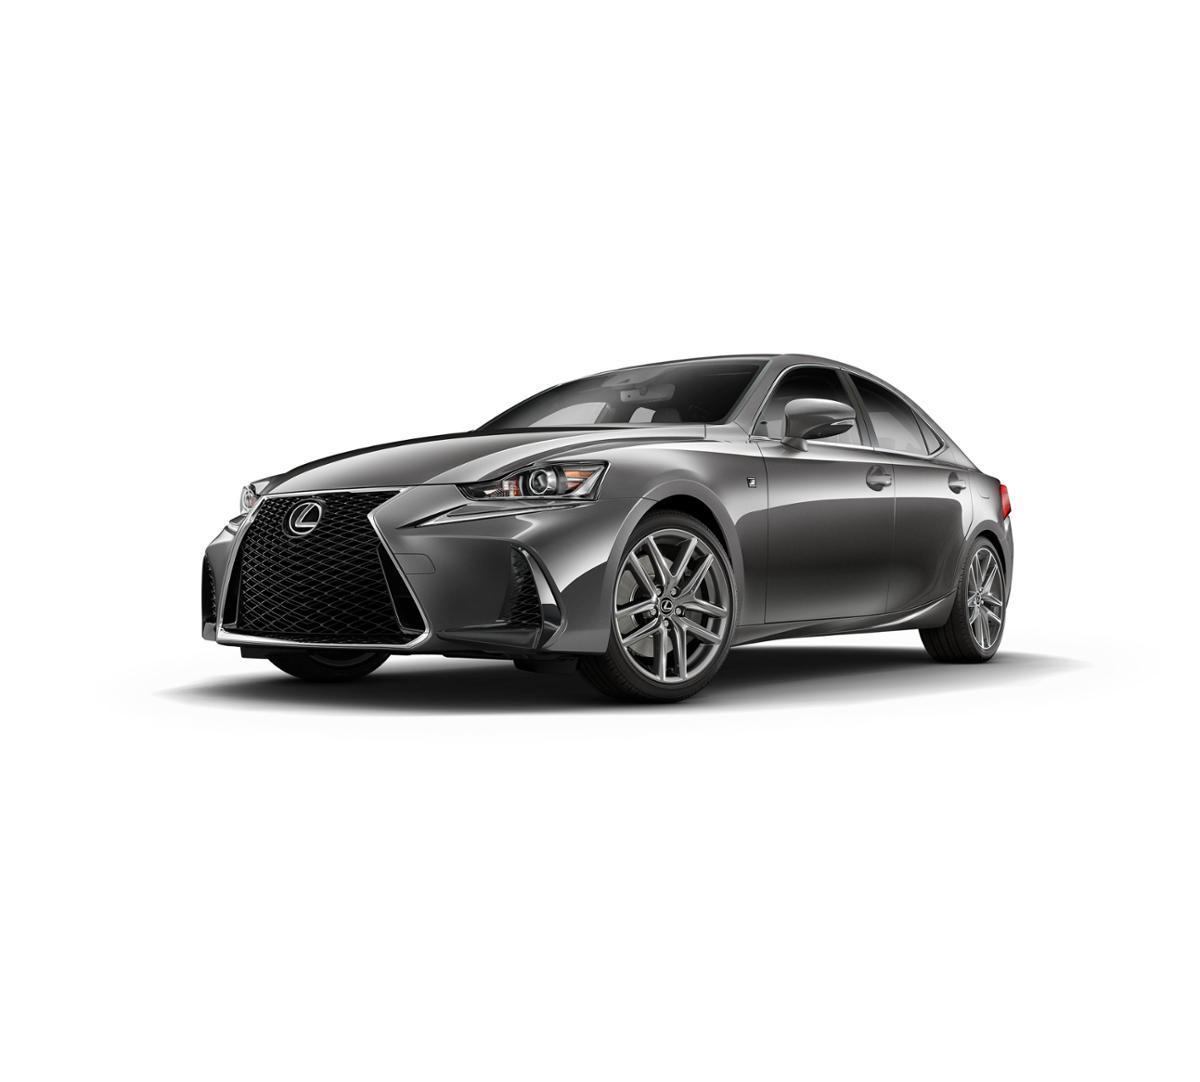 2018 Lexus IS 350 Vehicle Photo in Las Vegas, NV 89146